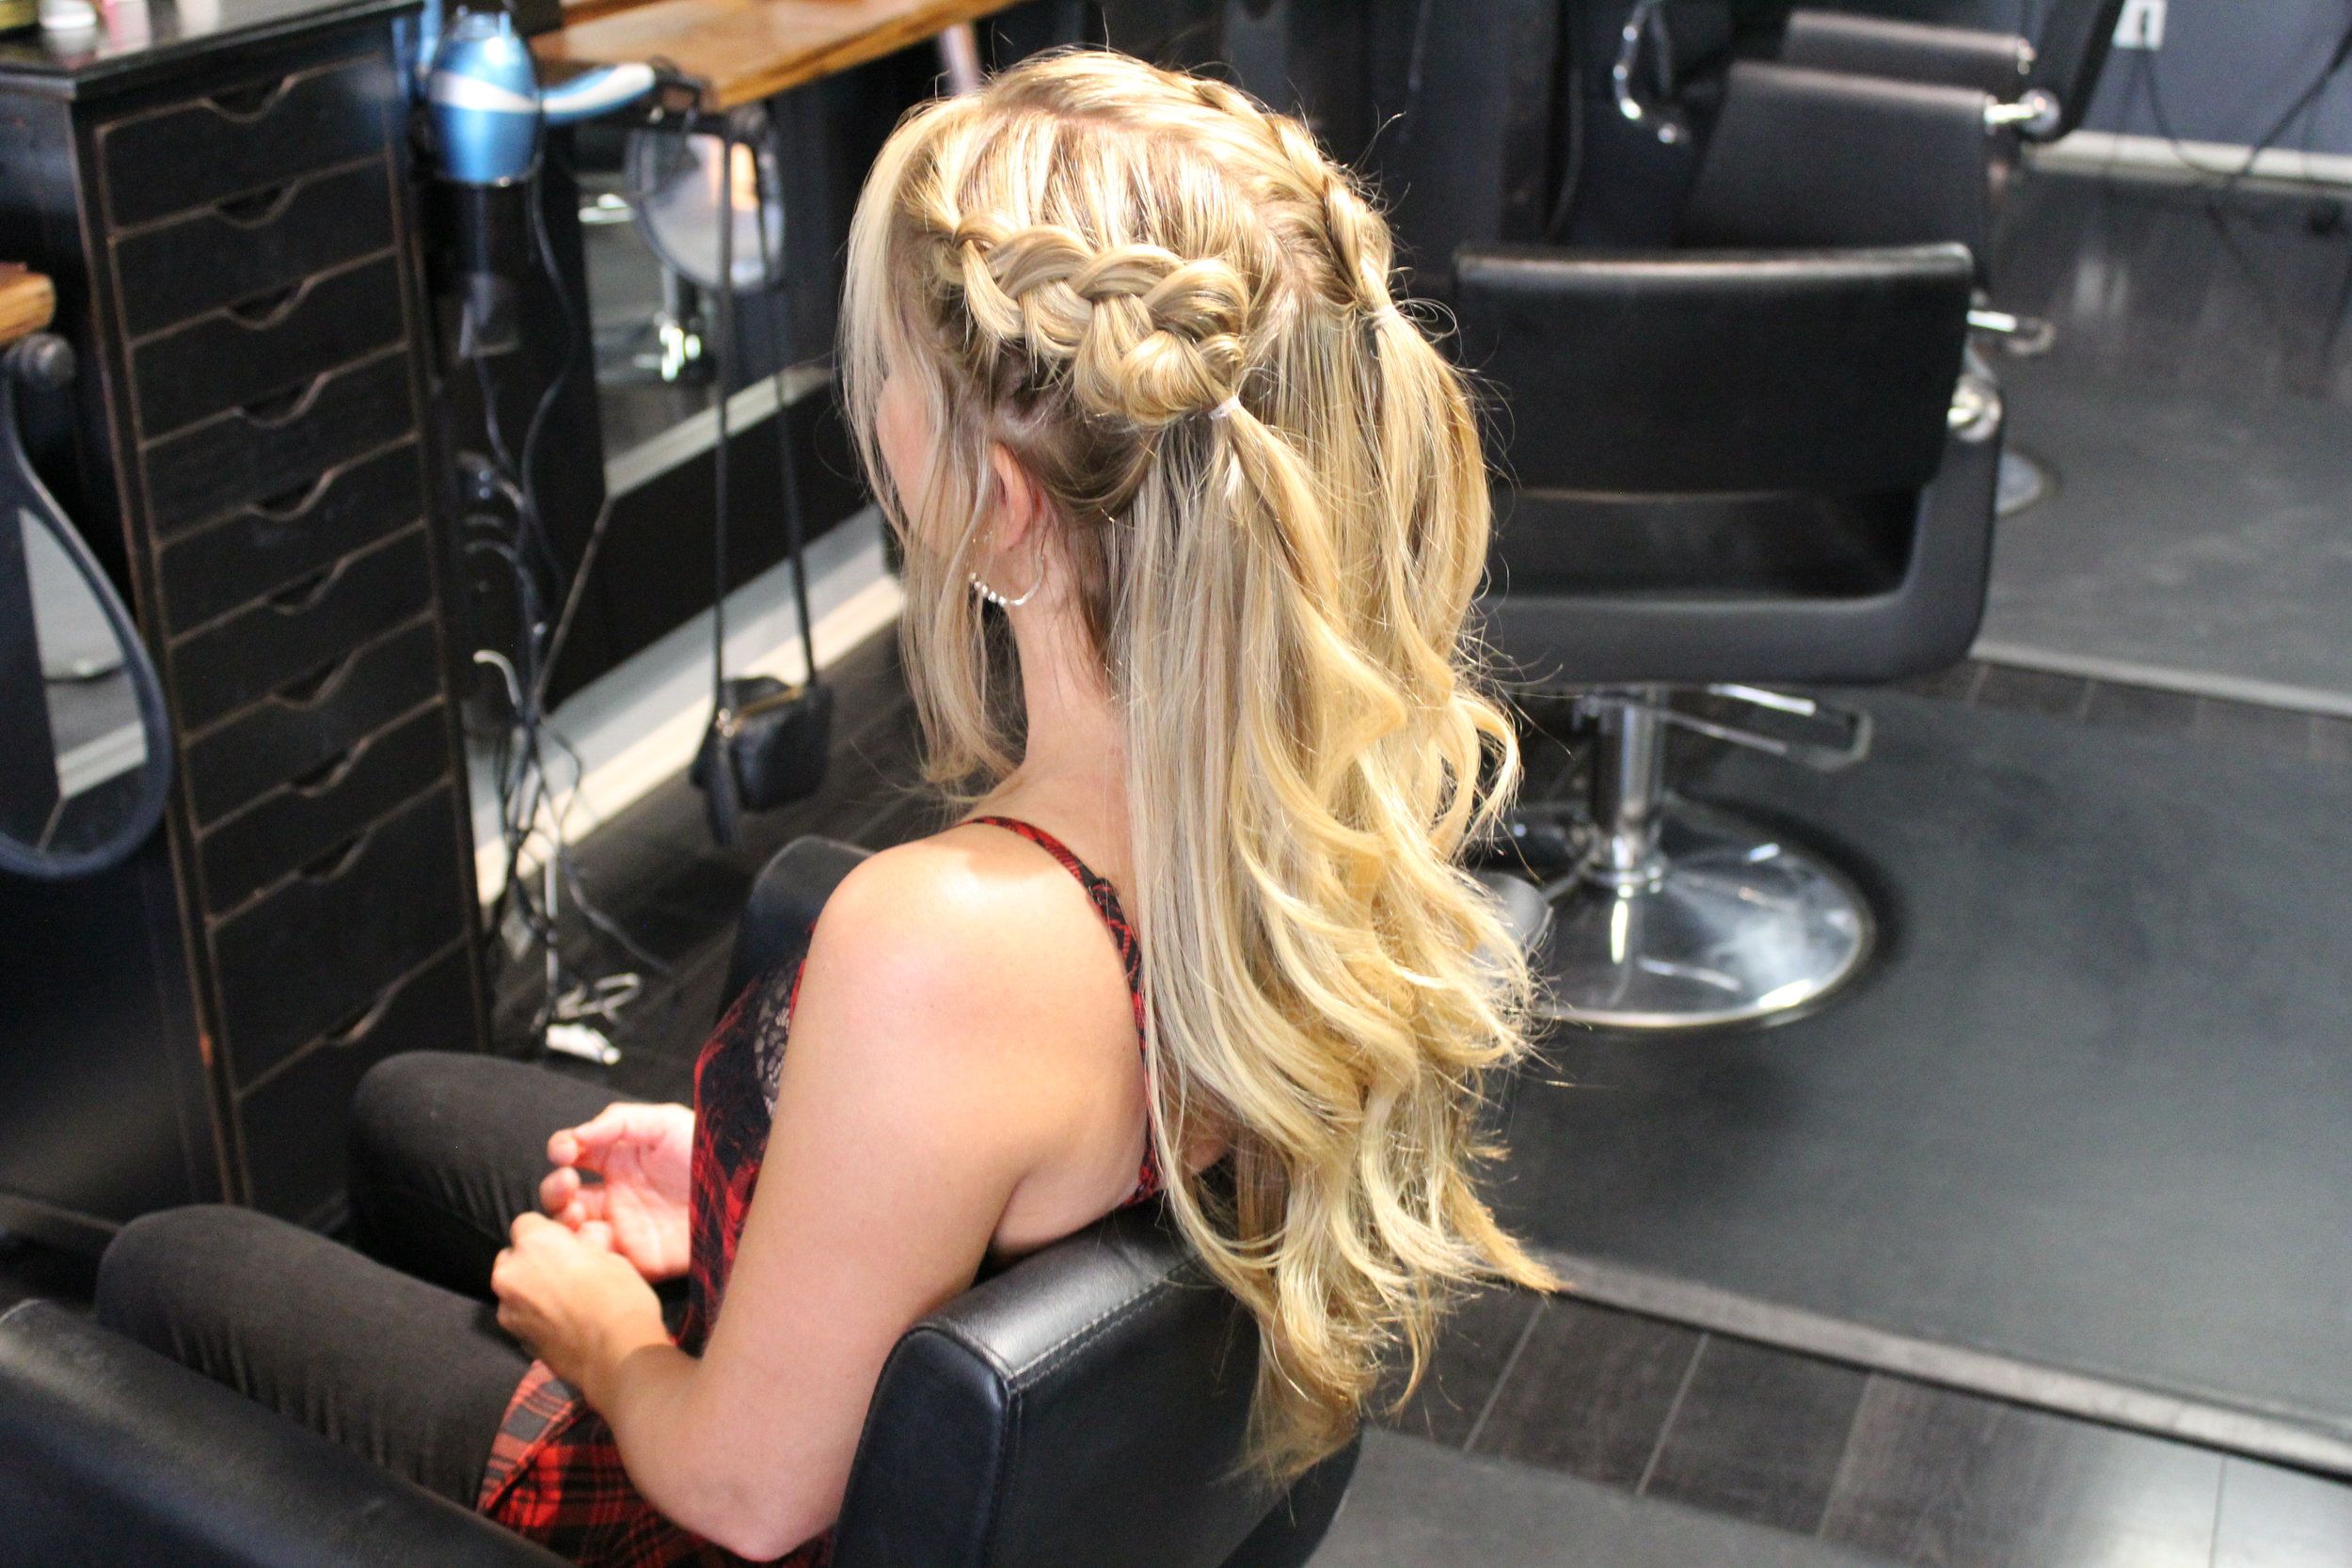 Loose Braided Pigtails - What could be more fun than pigtails?! This modern take on the pigtail is effortless with loose braids.